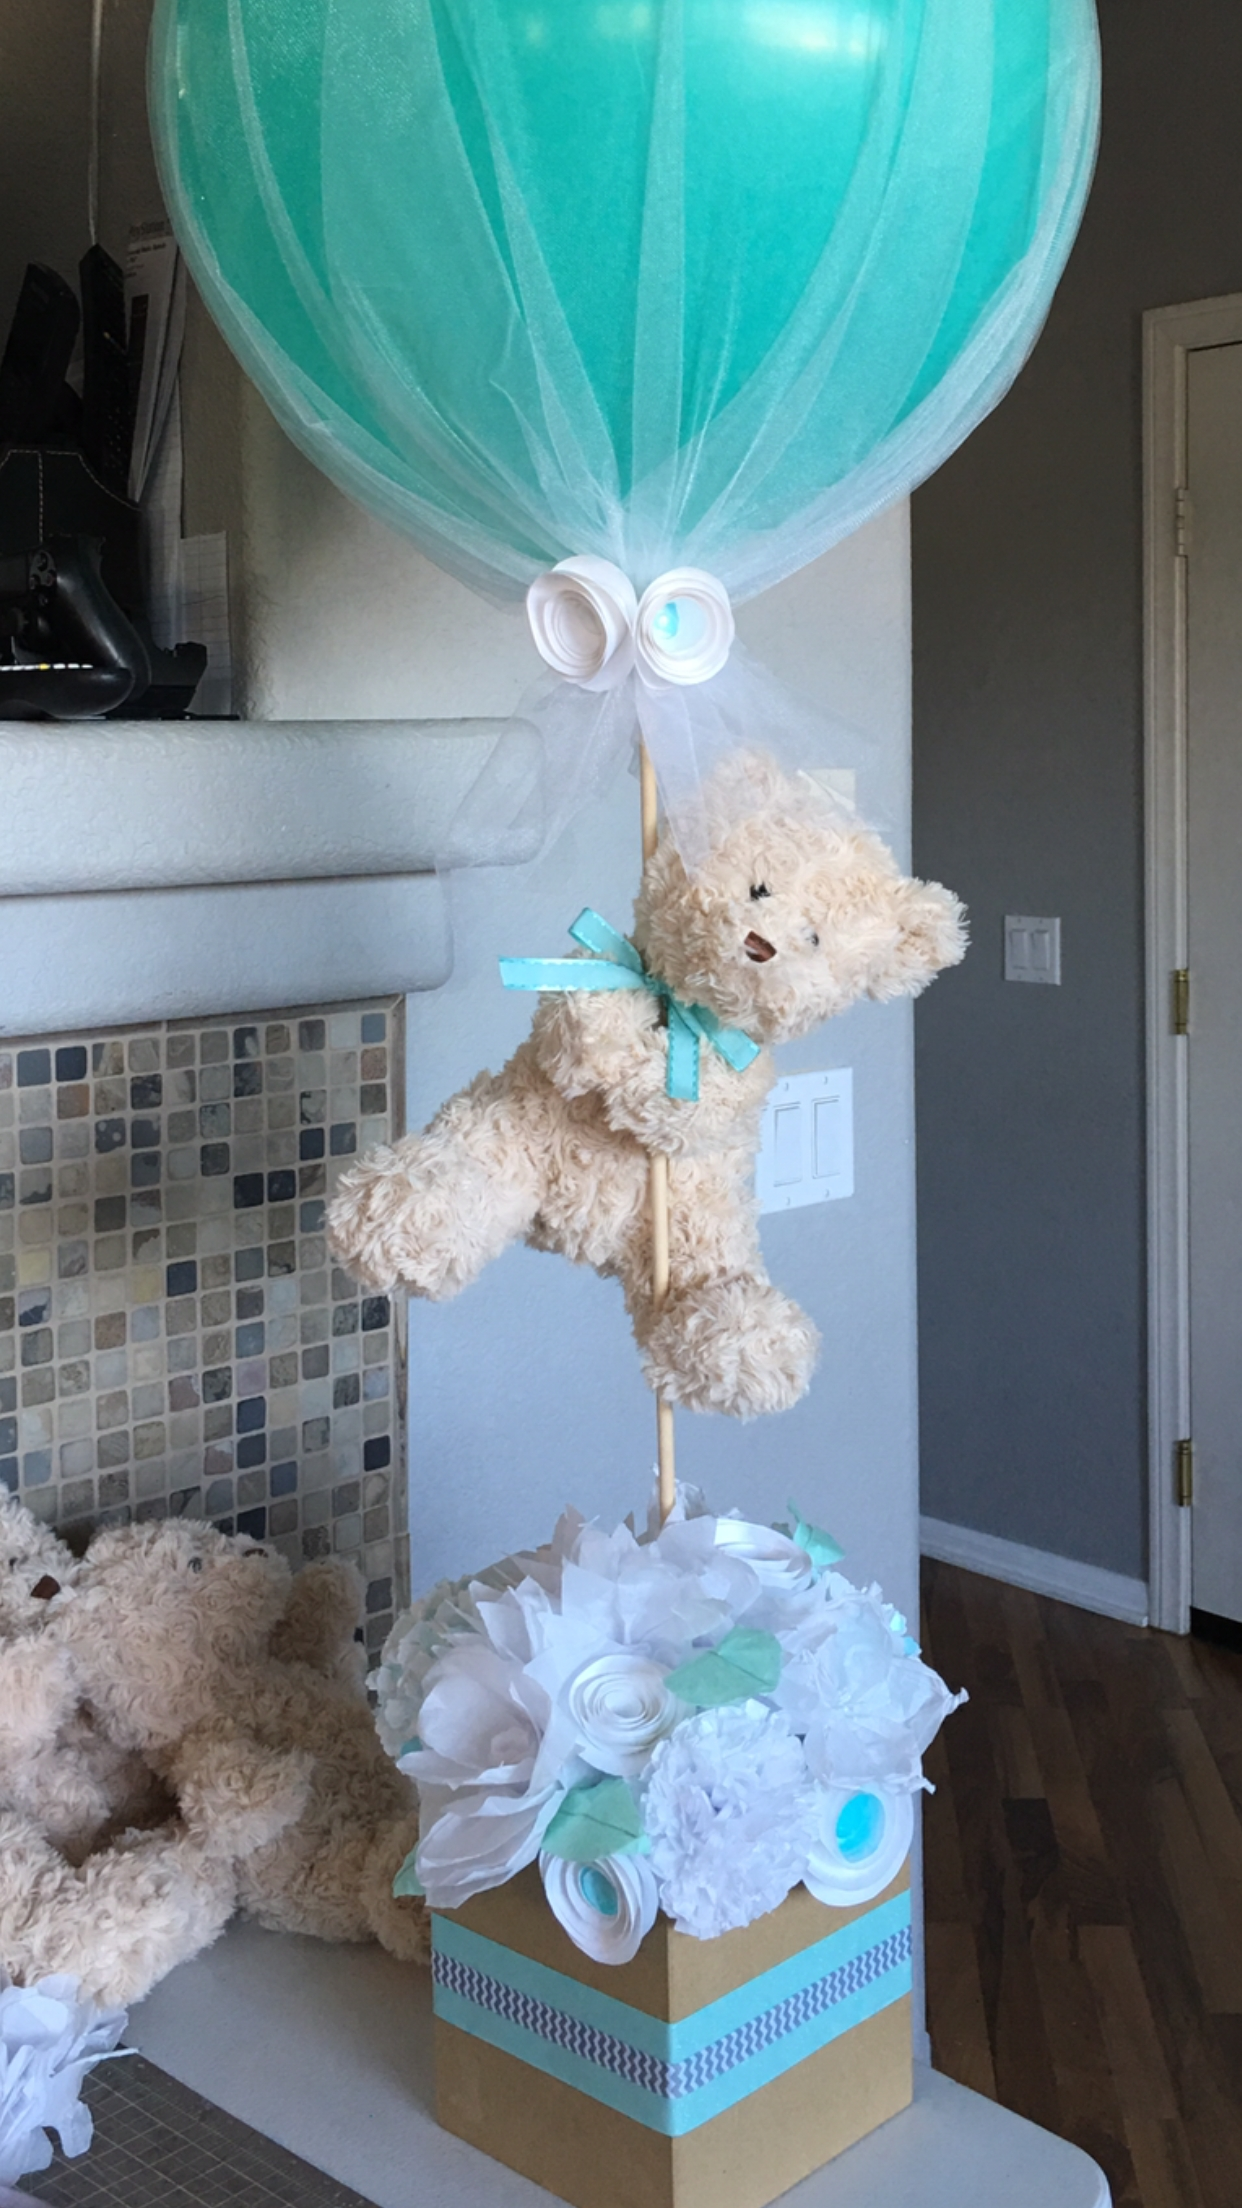 10 Fabulous Decorations For Baby Shower Ideas 10 gender reveal party food ideas for your family babies 23 2021